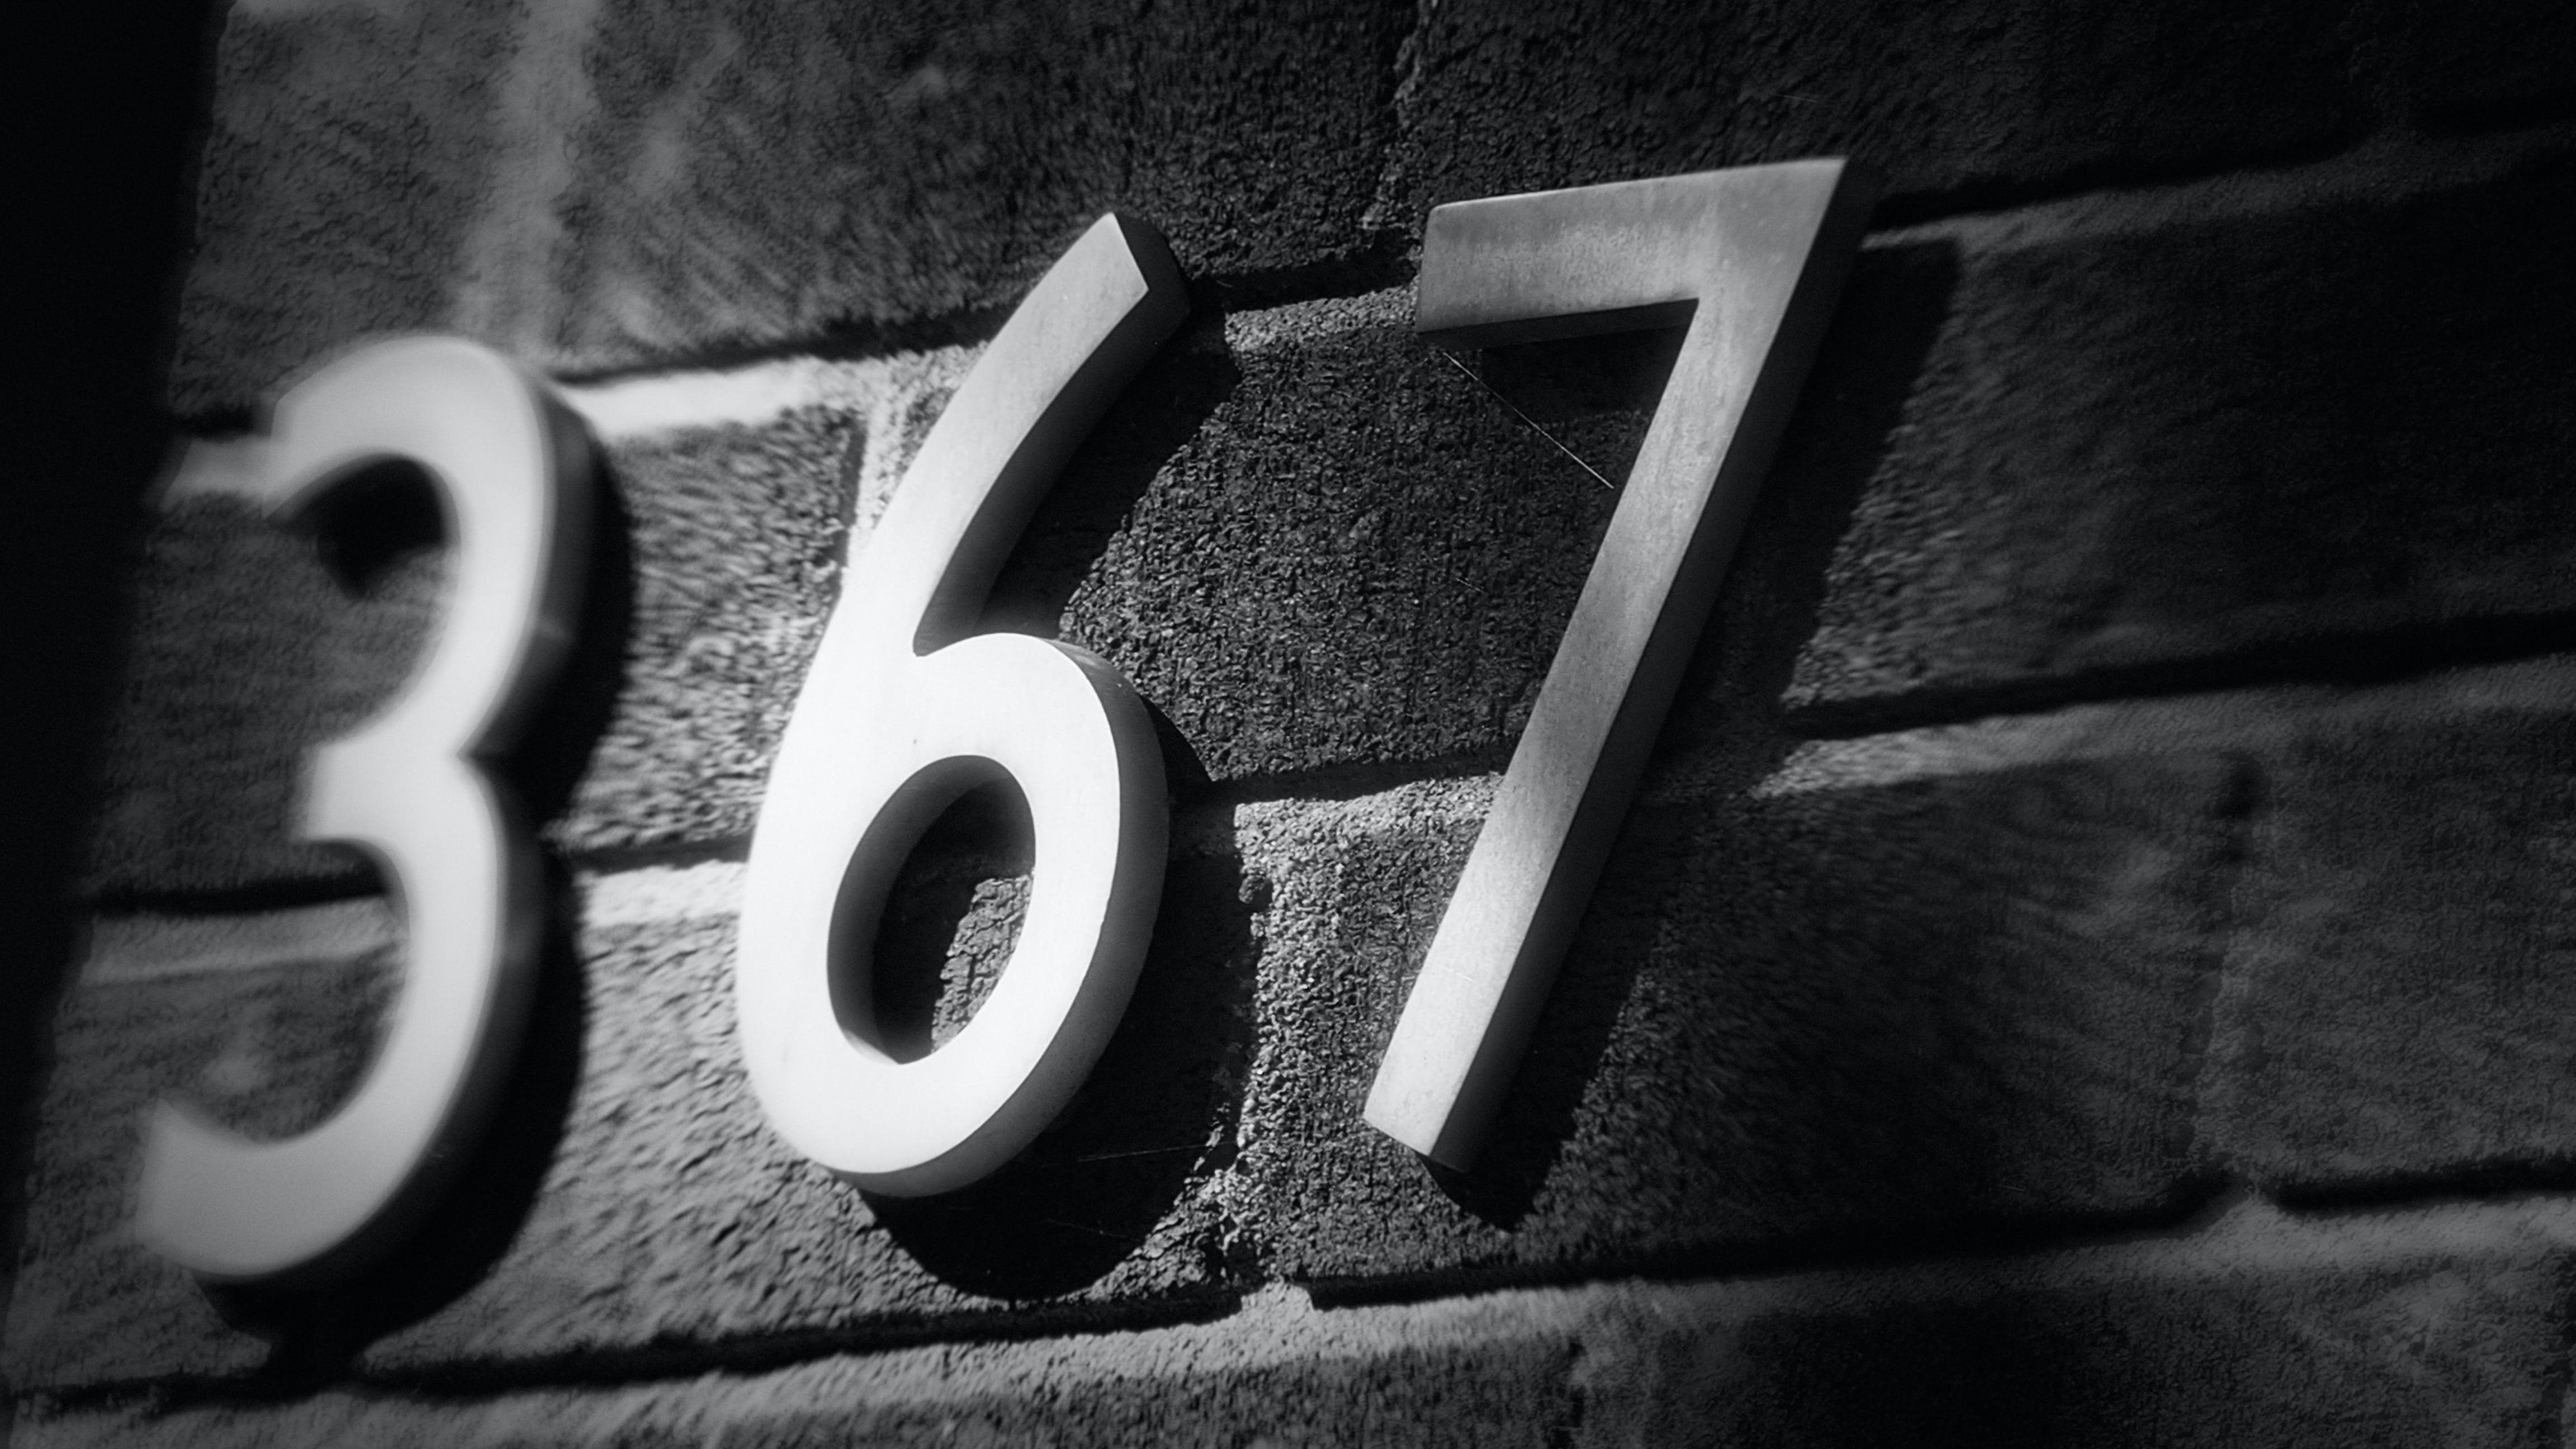 Free stock photo of street number